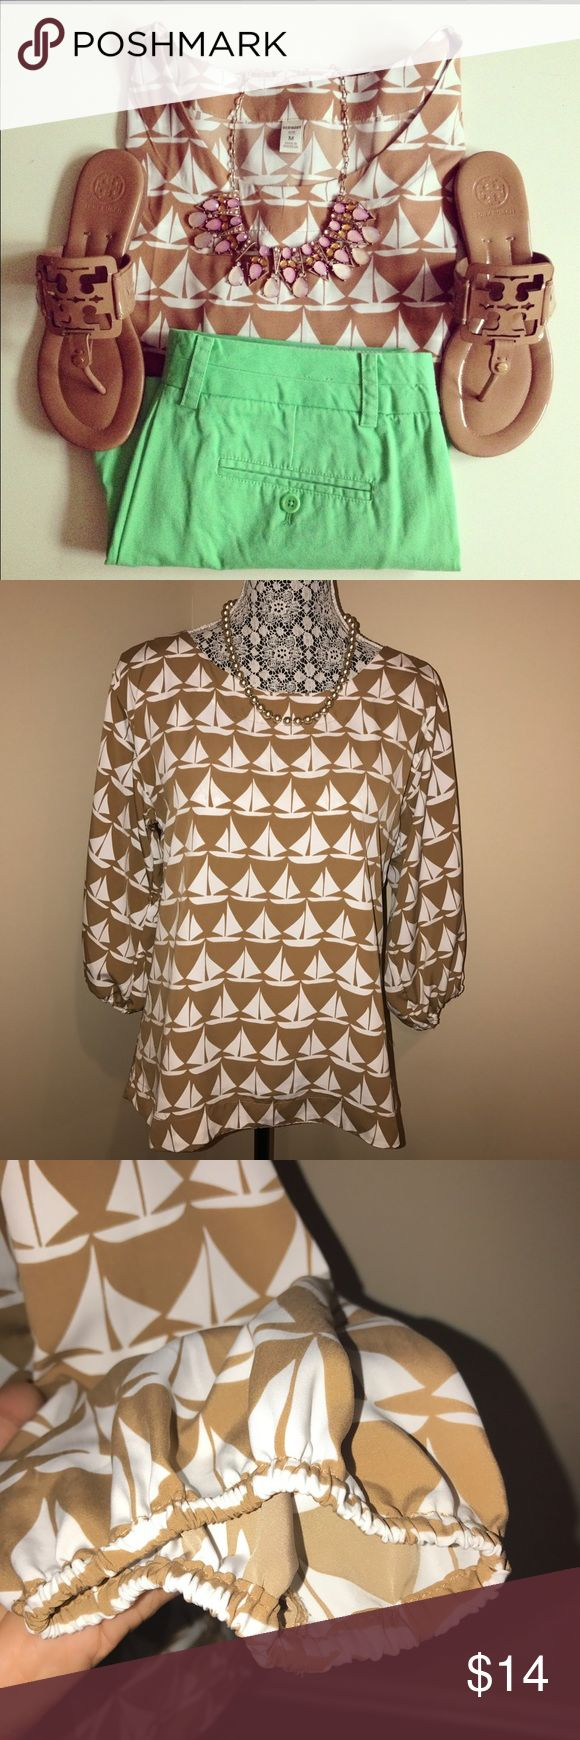 """Sailboat Print Blouse Tan/White Small Great used condition Old Navy 3/4 sleeved blouse Sailboat Print boatneck blouse tan/white 19"""" bust, 25"""" length measurements taken while laying flat.  100% polyester  First pic is stock photo, all others are actual blouse for sale.  Feel free to ask any questions.  Thanks for looking! Old Navy Tops Blouses"""